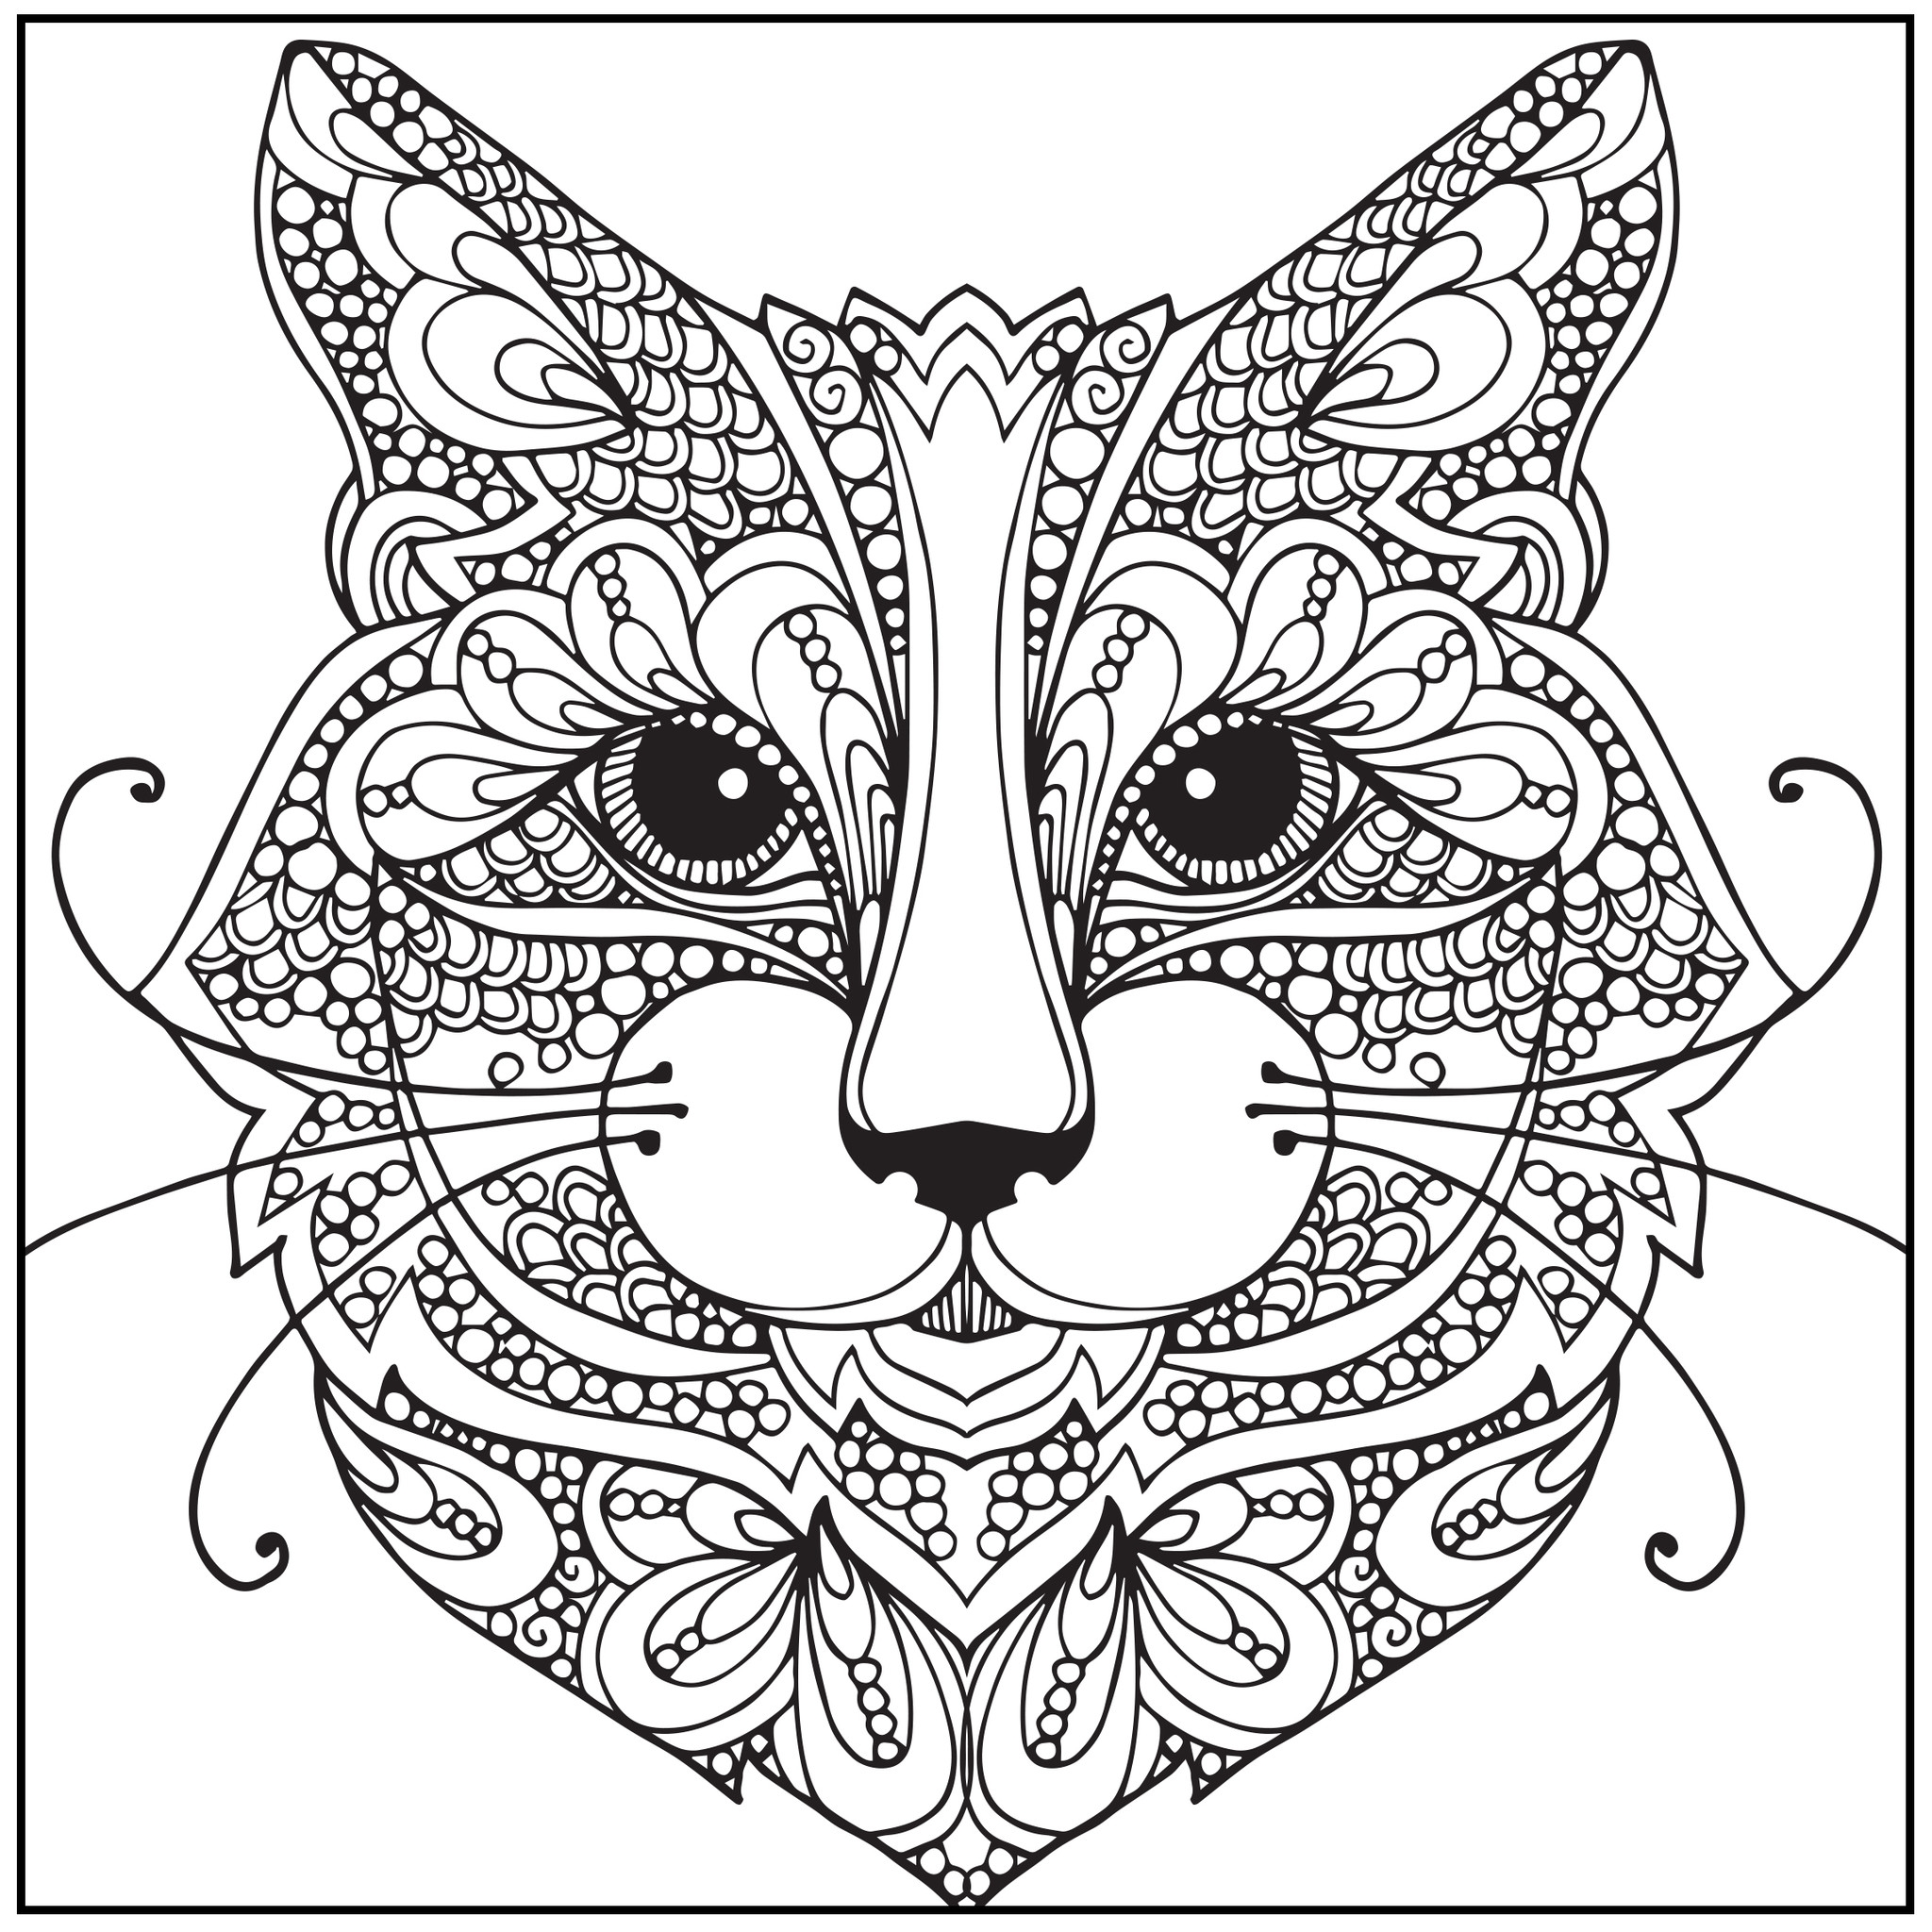 2048x2048 Fresh Relaxing Coloring Pages Coloringsuite Free Coloring Pages